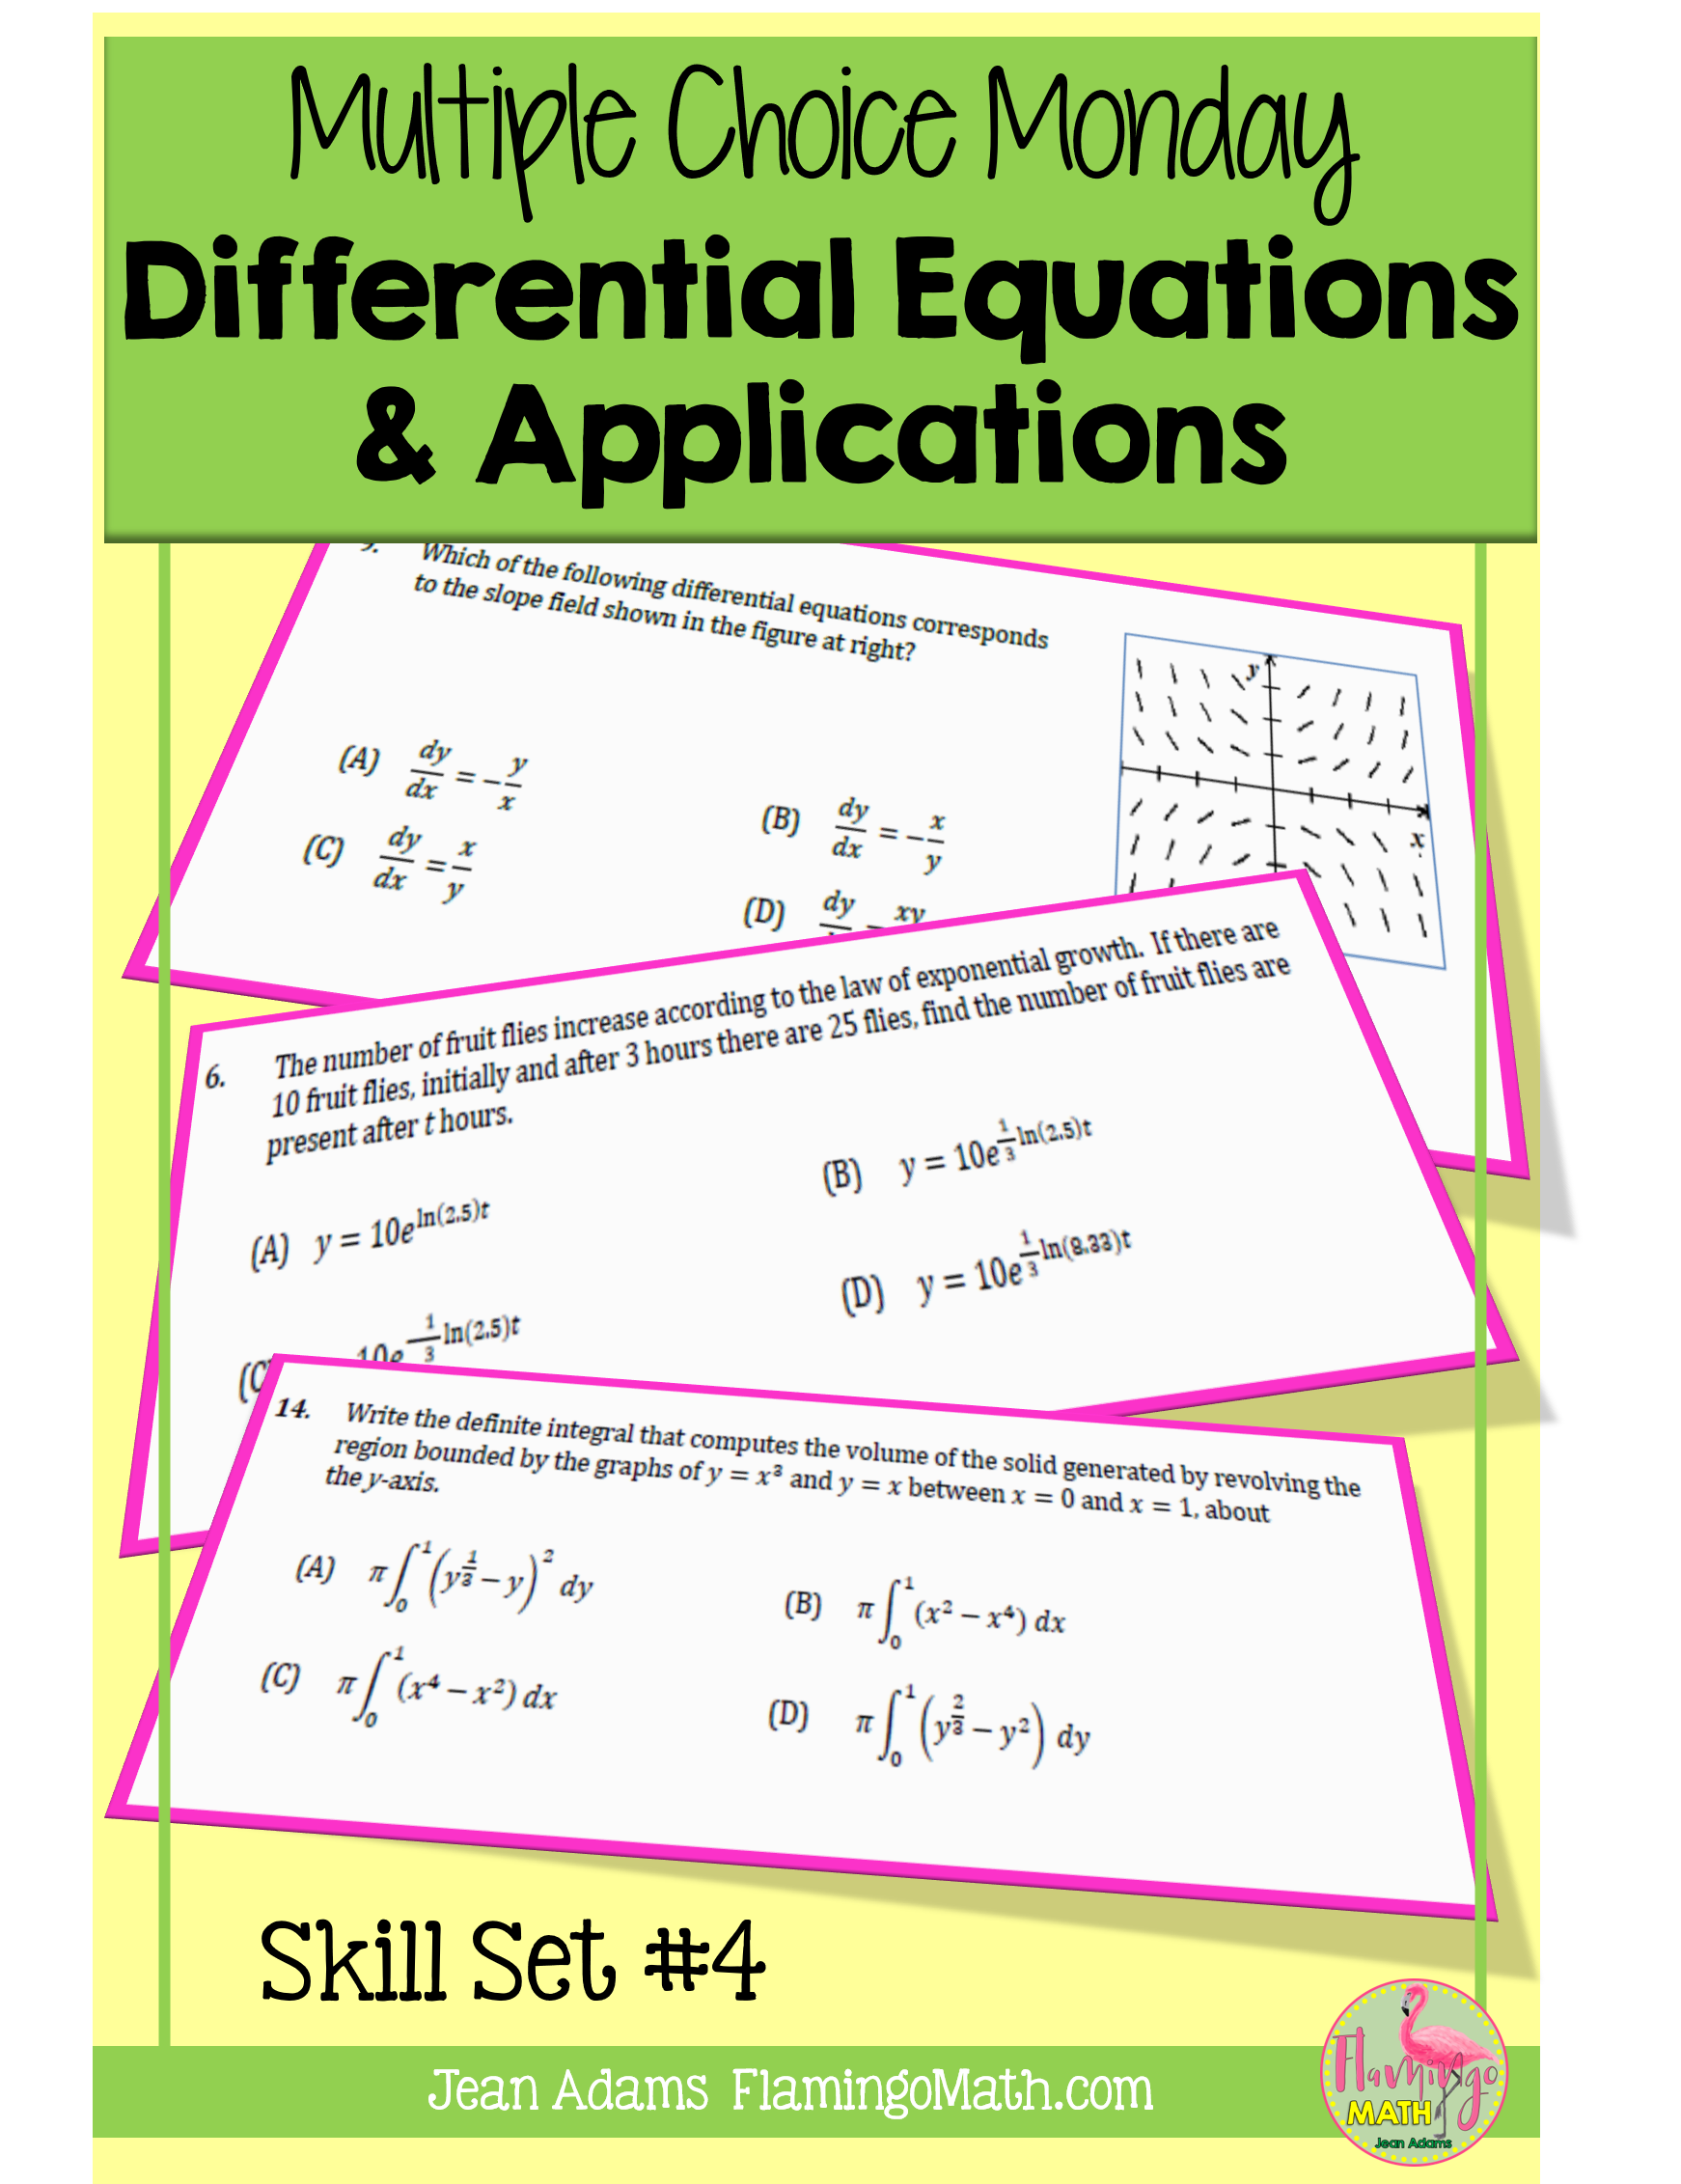 Differential Equations And Applications Ap Calculus Exam Prep In 2020 Ap Calculus Ap Calculus Ab Calculus